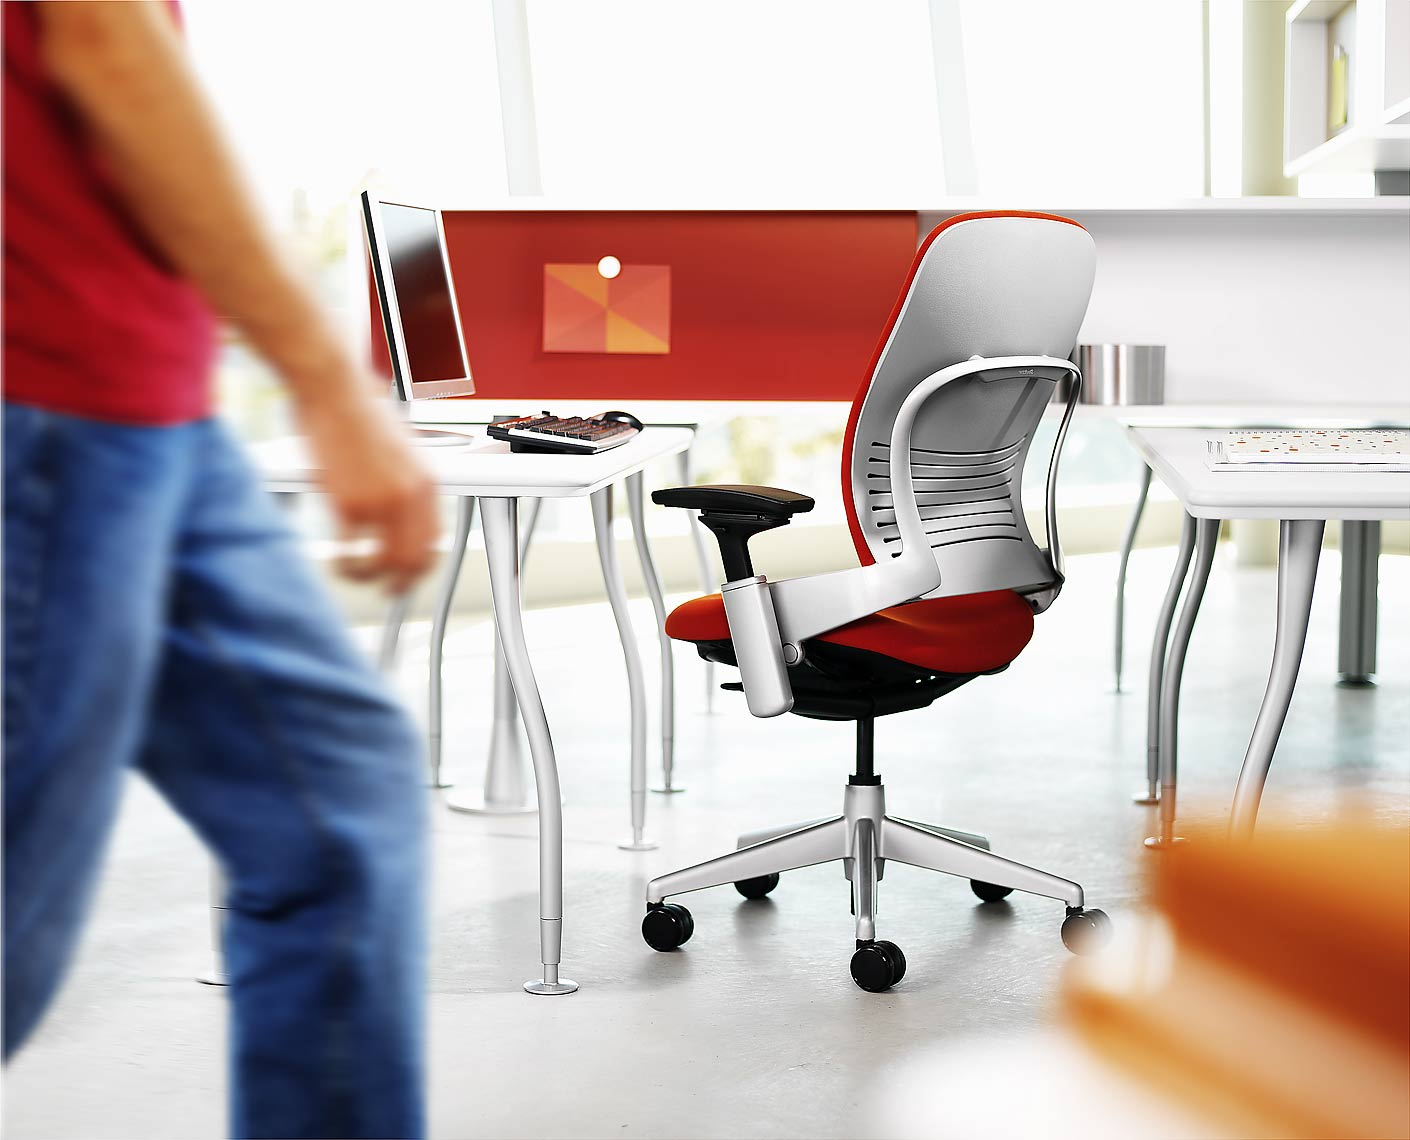 39-steelcase-greg-walking-new